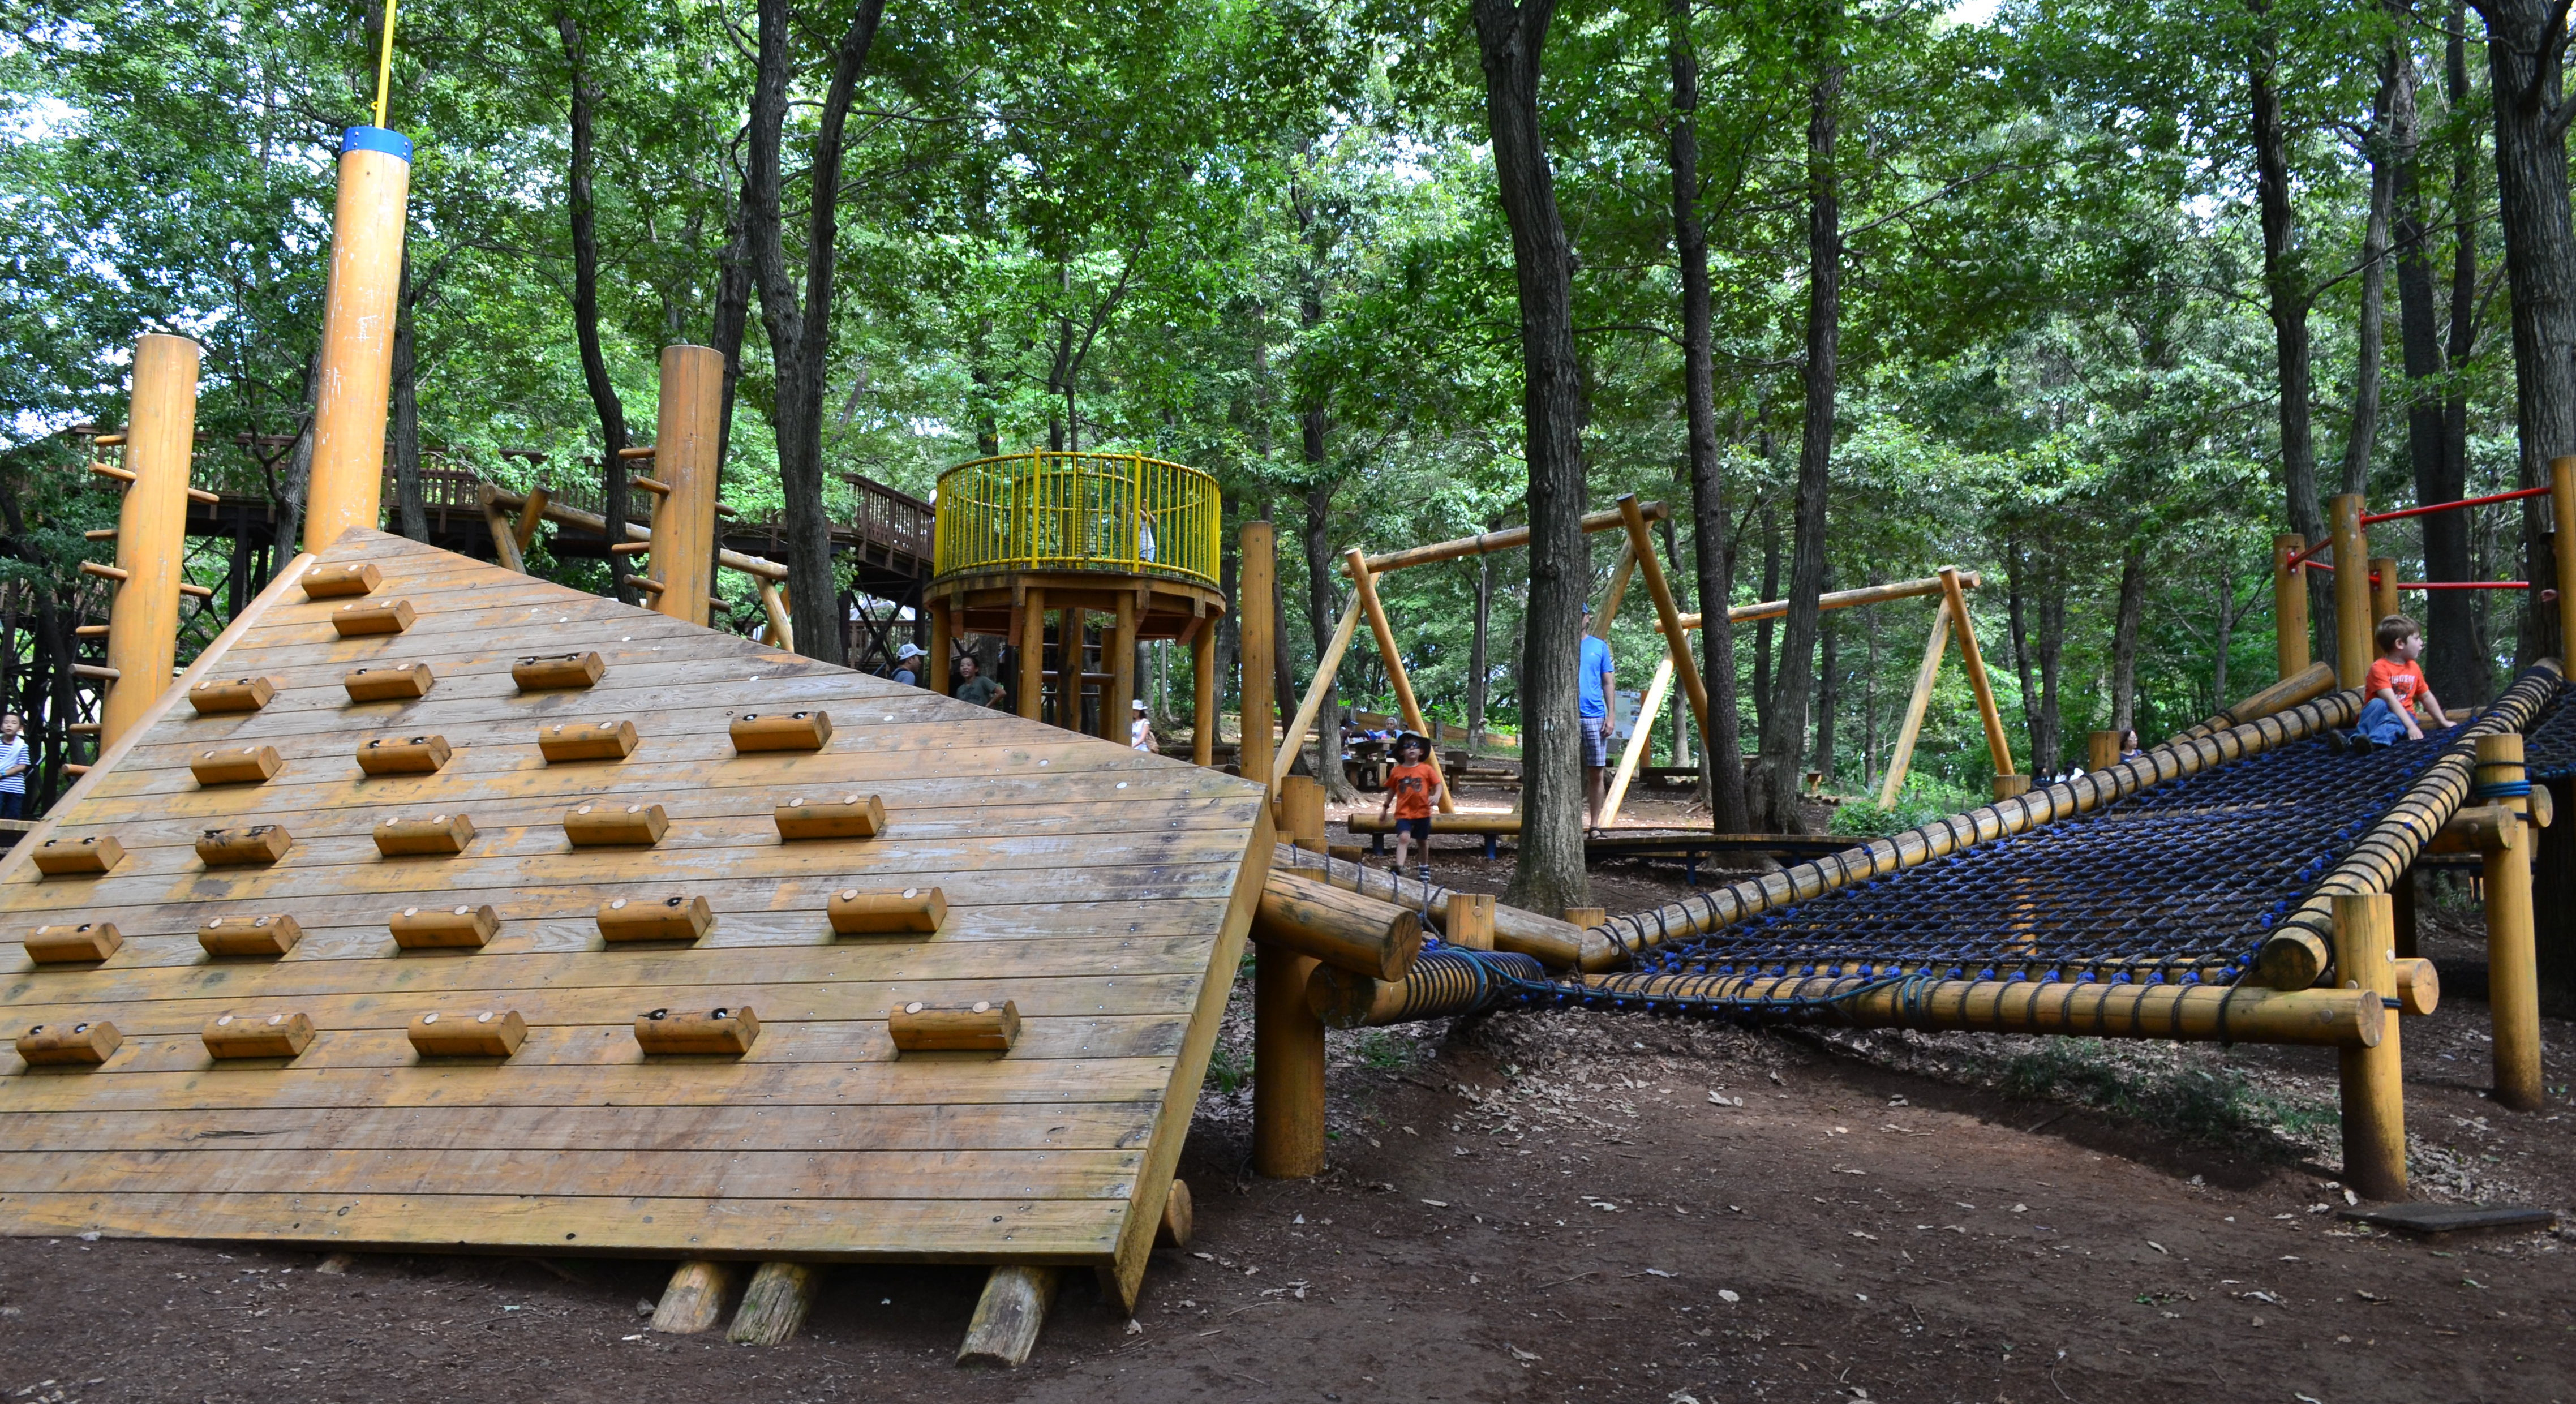 Obstacle Course Park – Noyama Kita